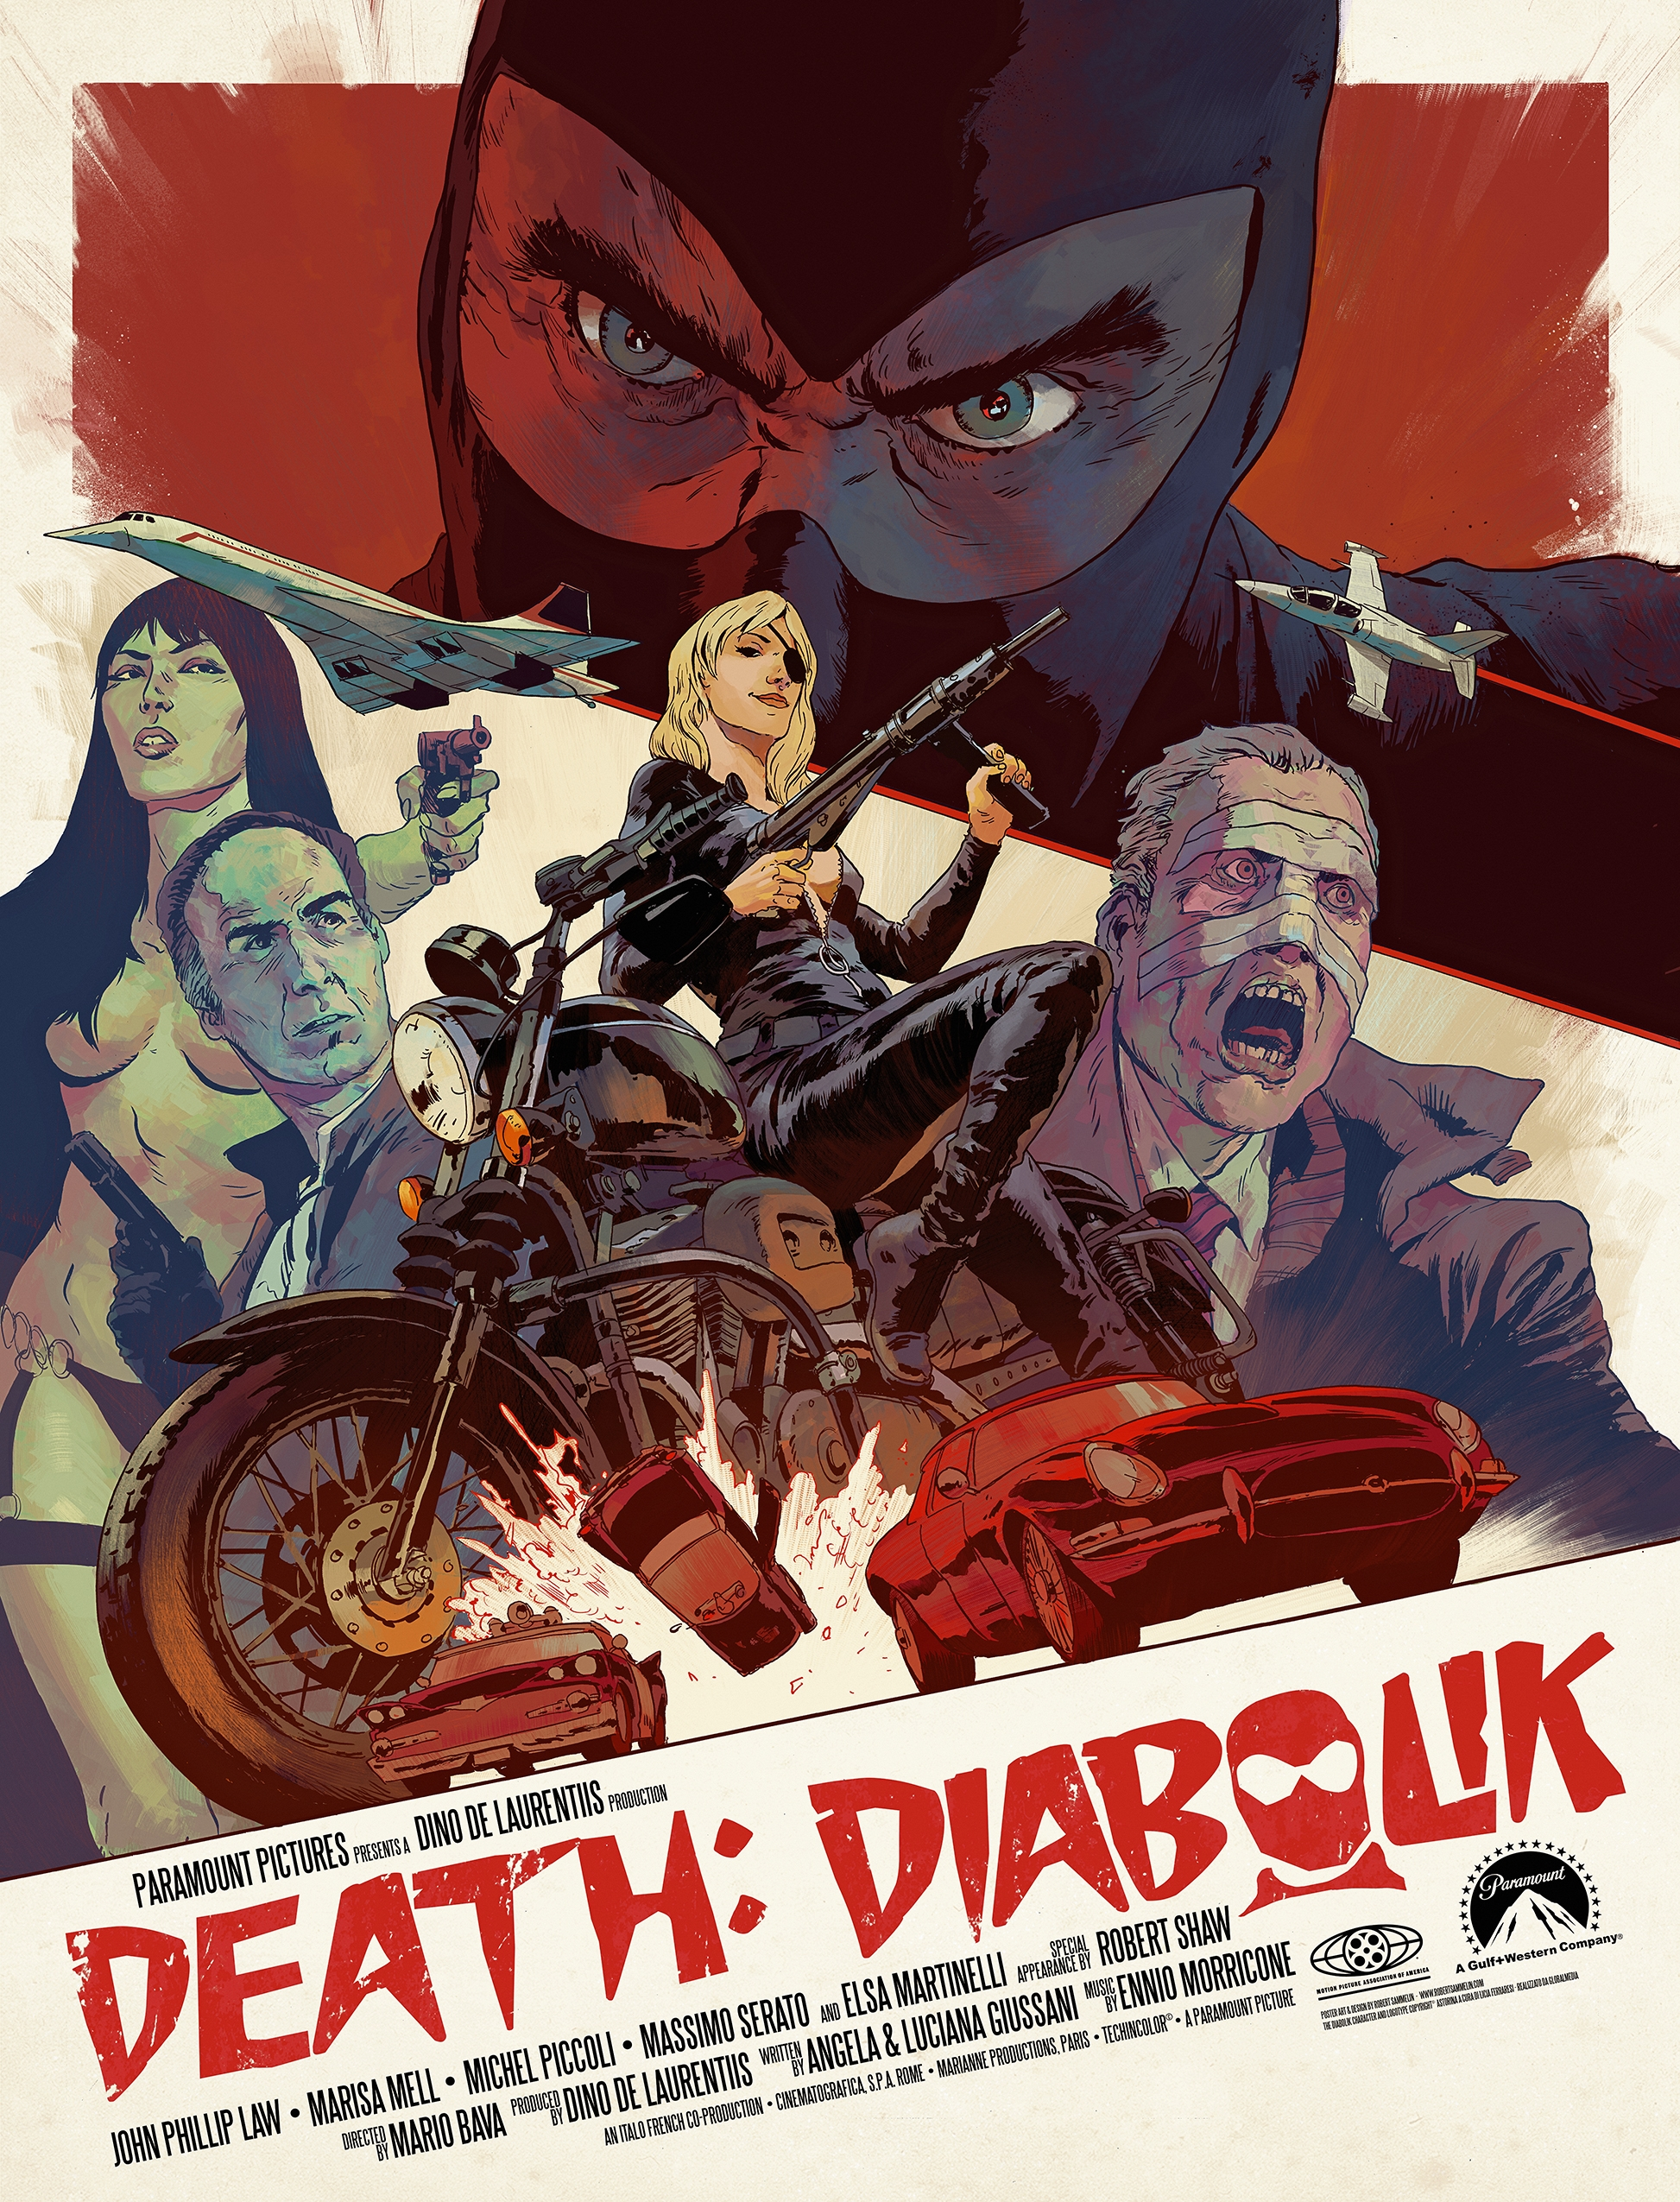 Death: Diabolik | Ink Photoshop - robertsammelin-9753 | ello